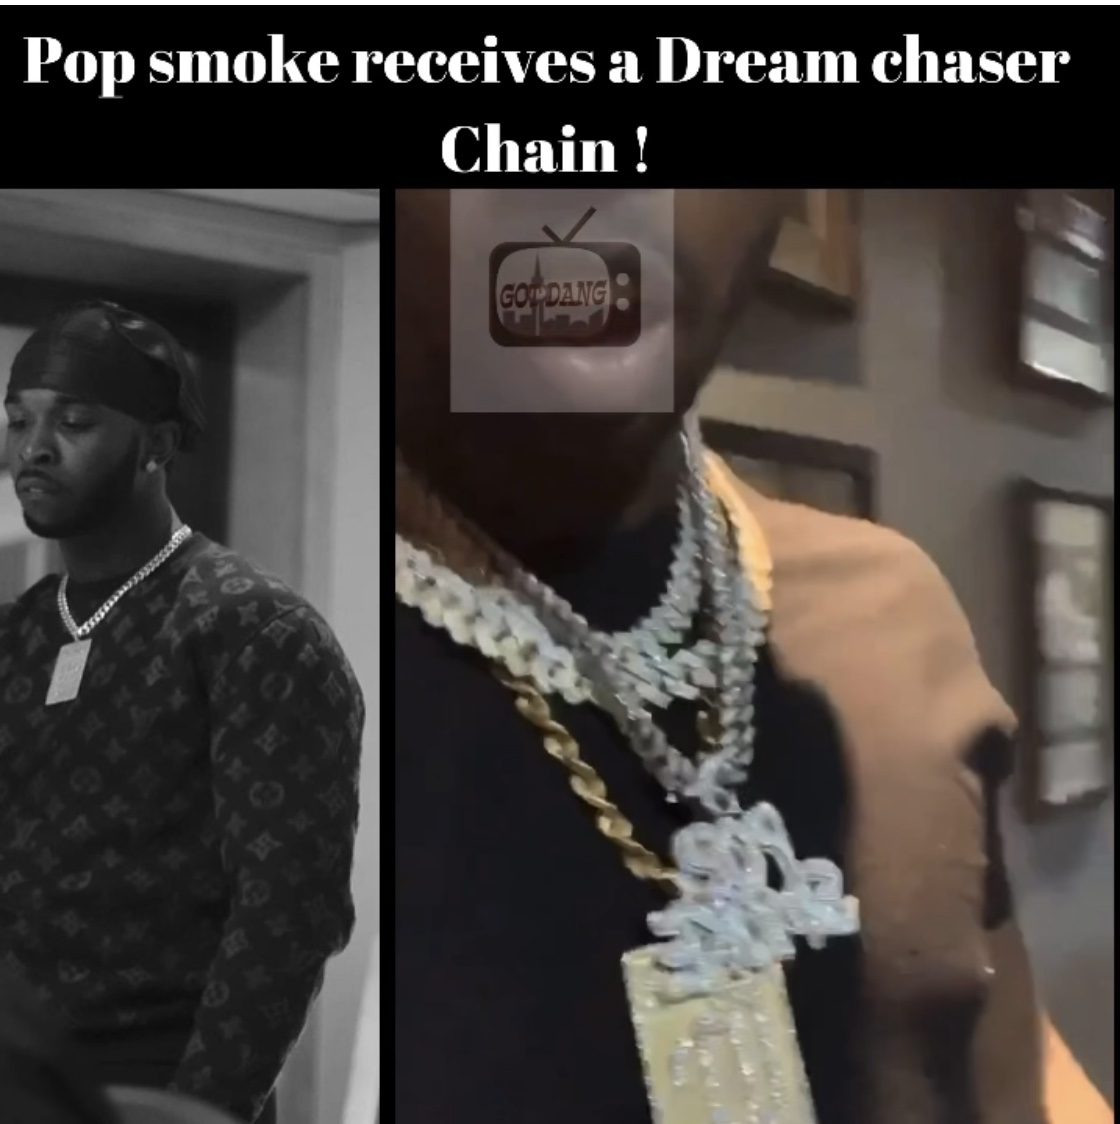 Pop smoke was Gifted a DreamChasers chain !